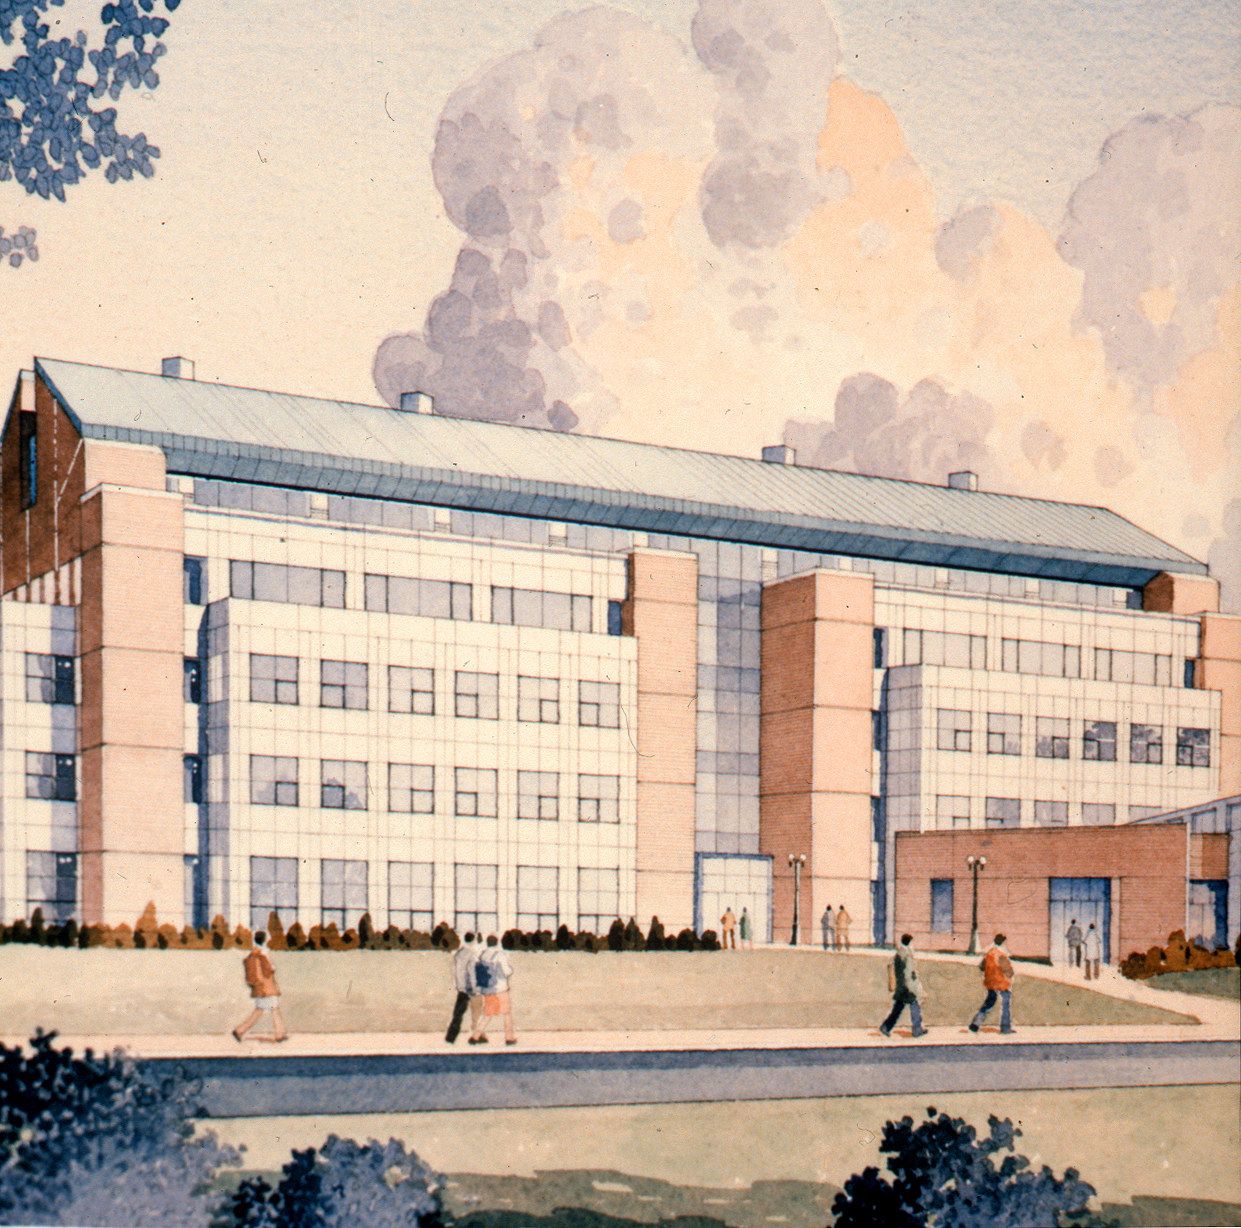 Architectural drawing, Academic I, Prince William Institute, 1994